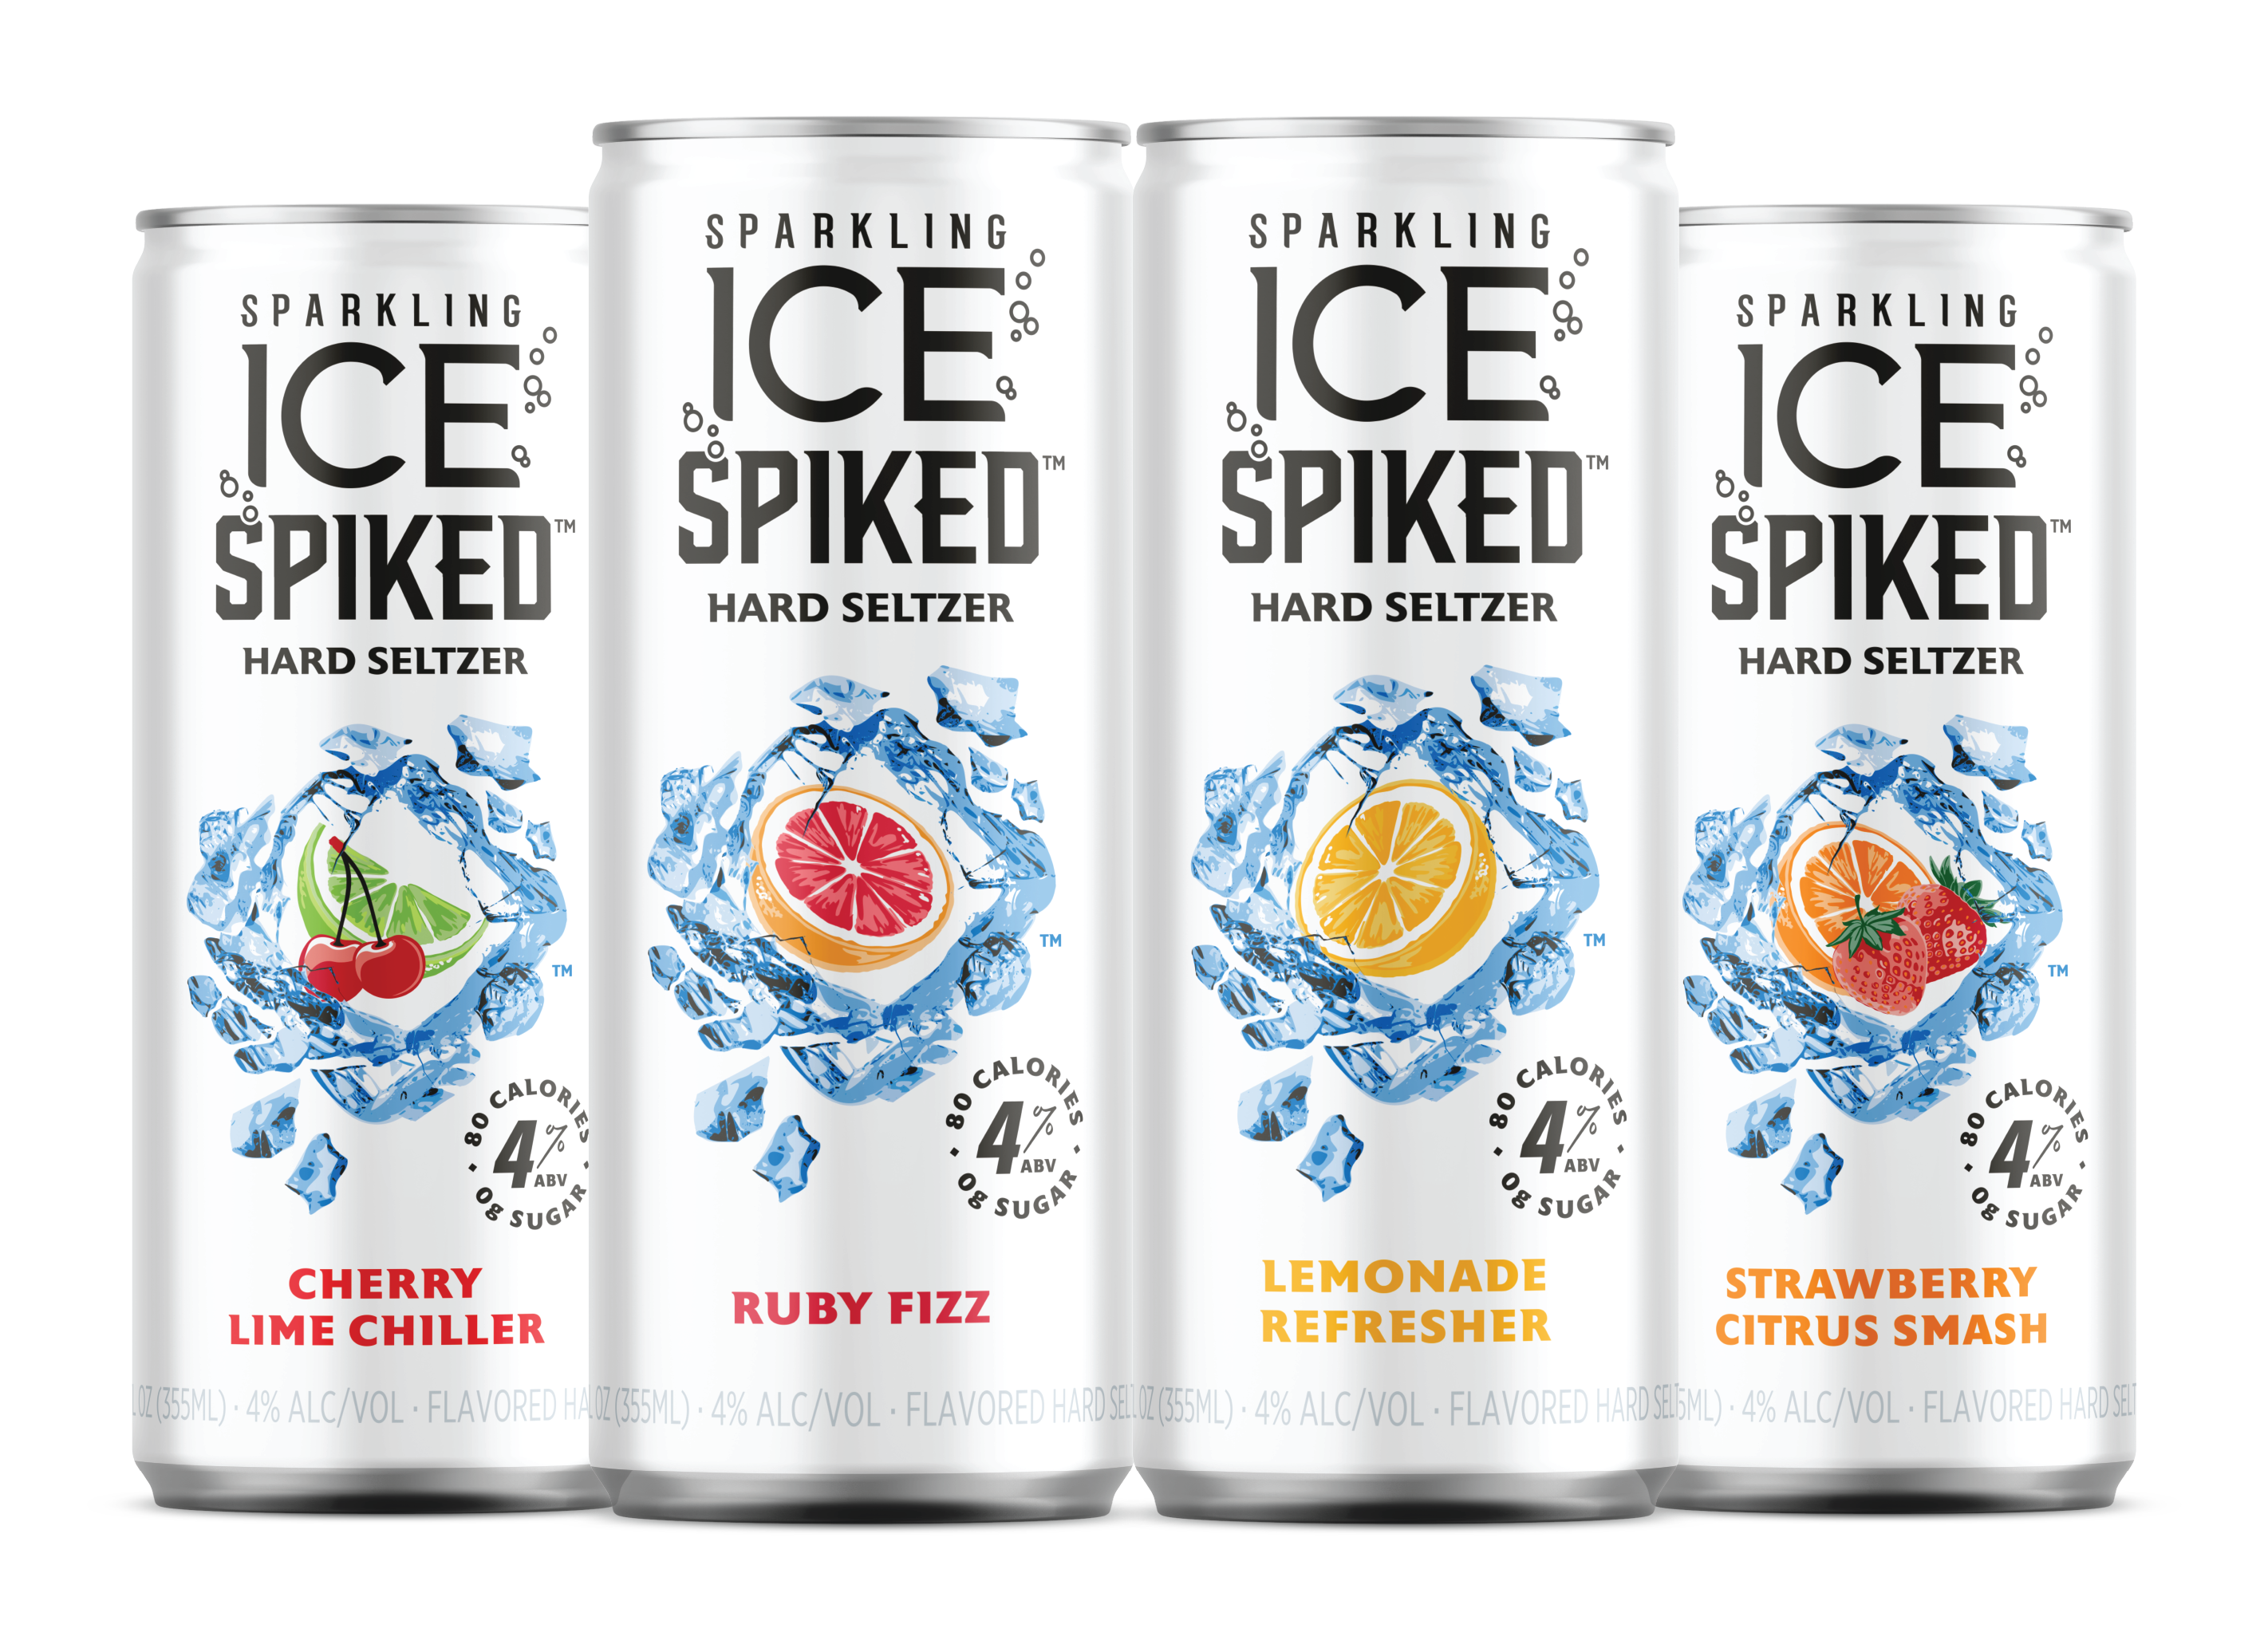 SPIKED by Sparkling Ice